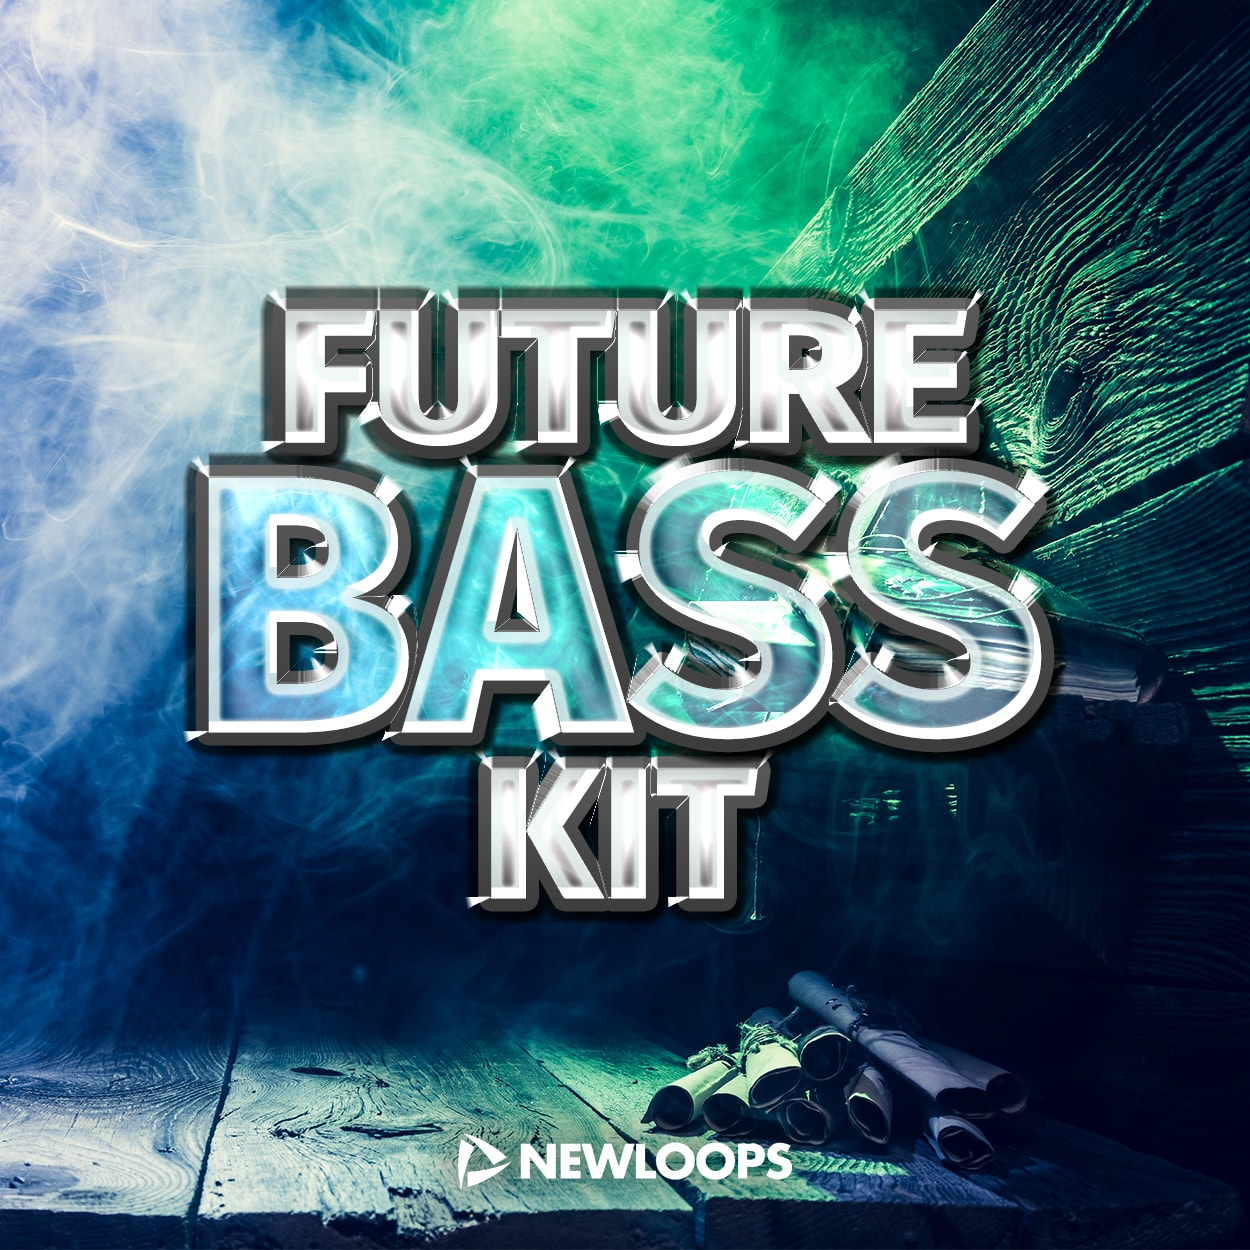 New Loops Future bass